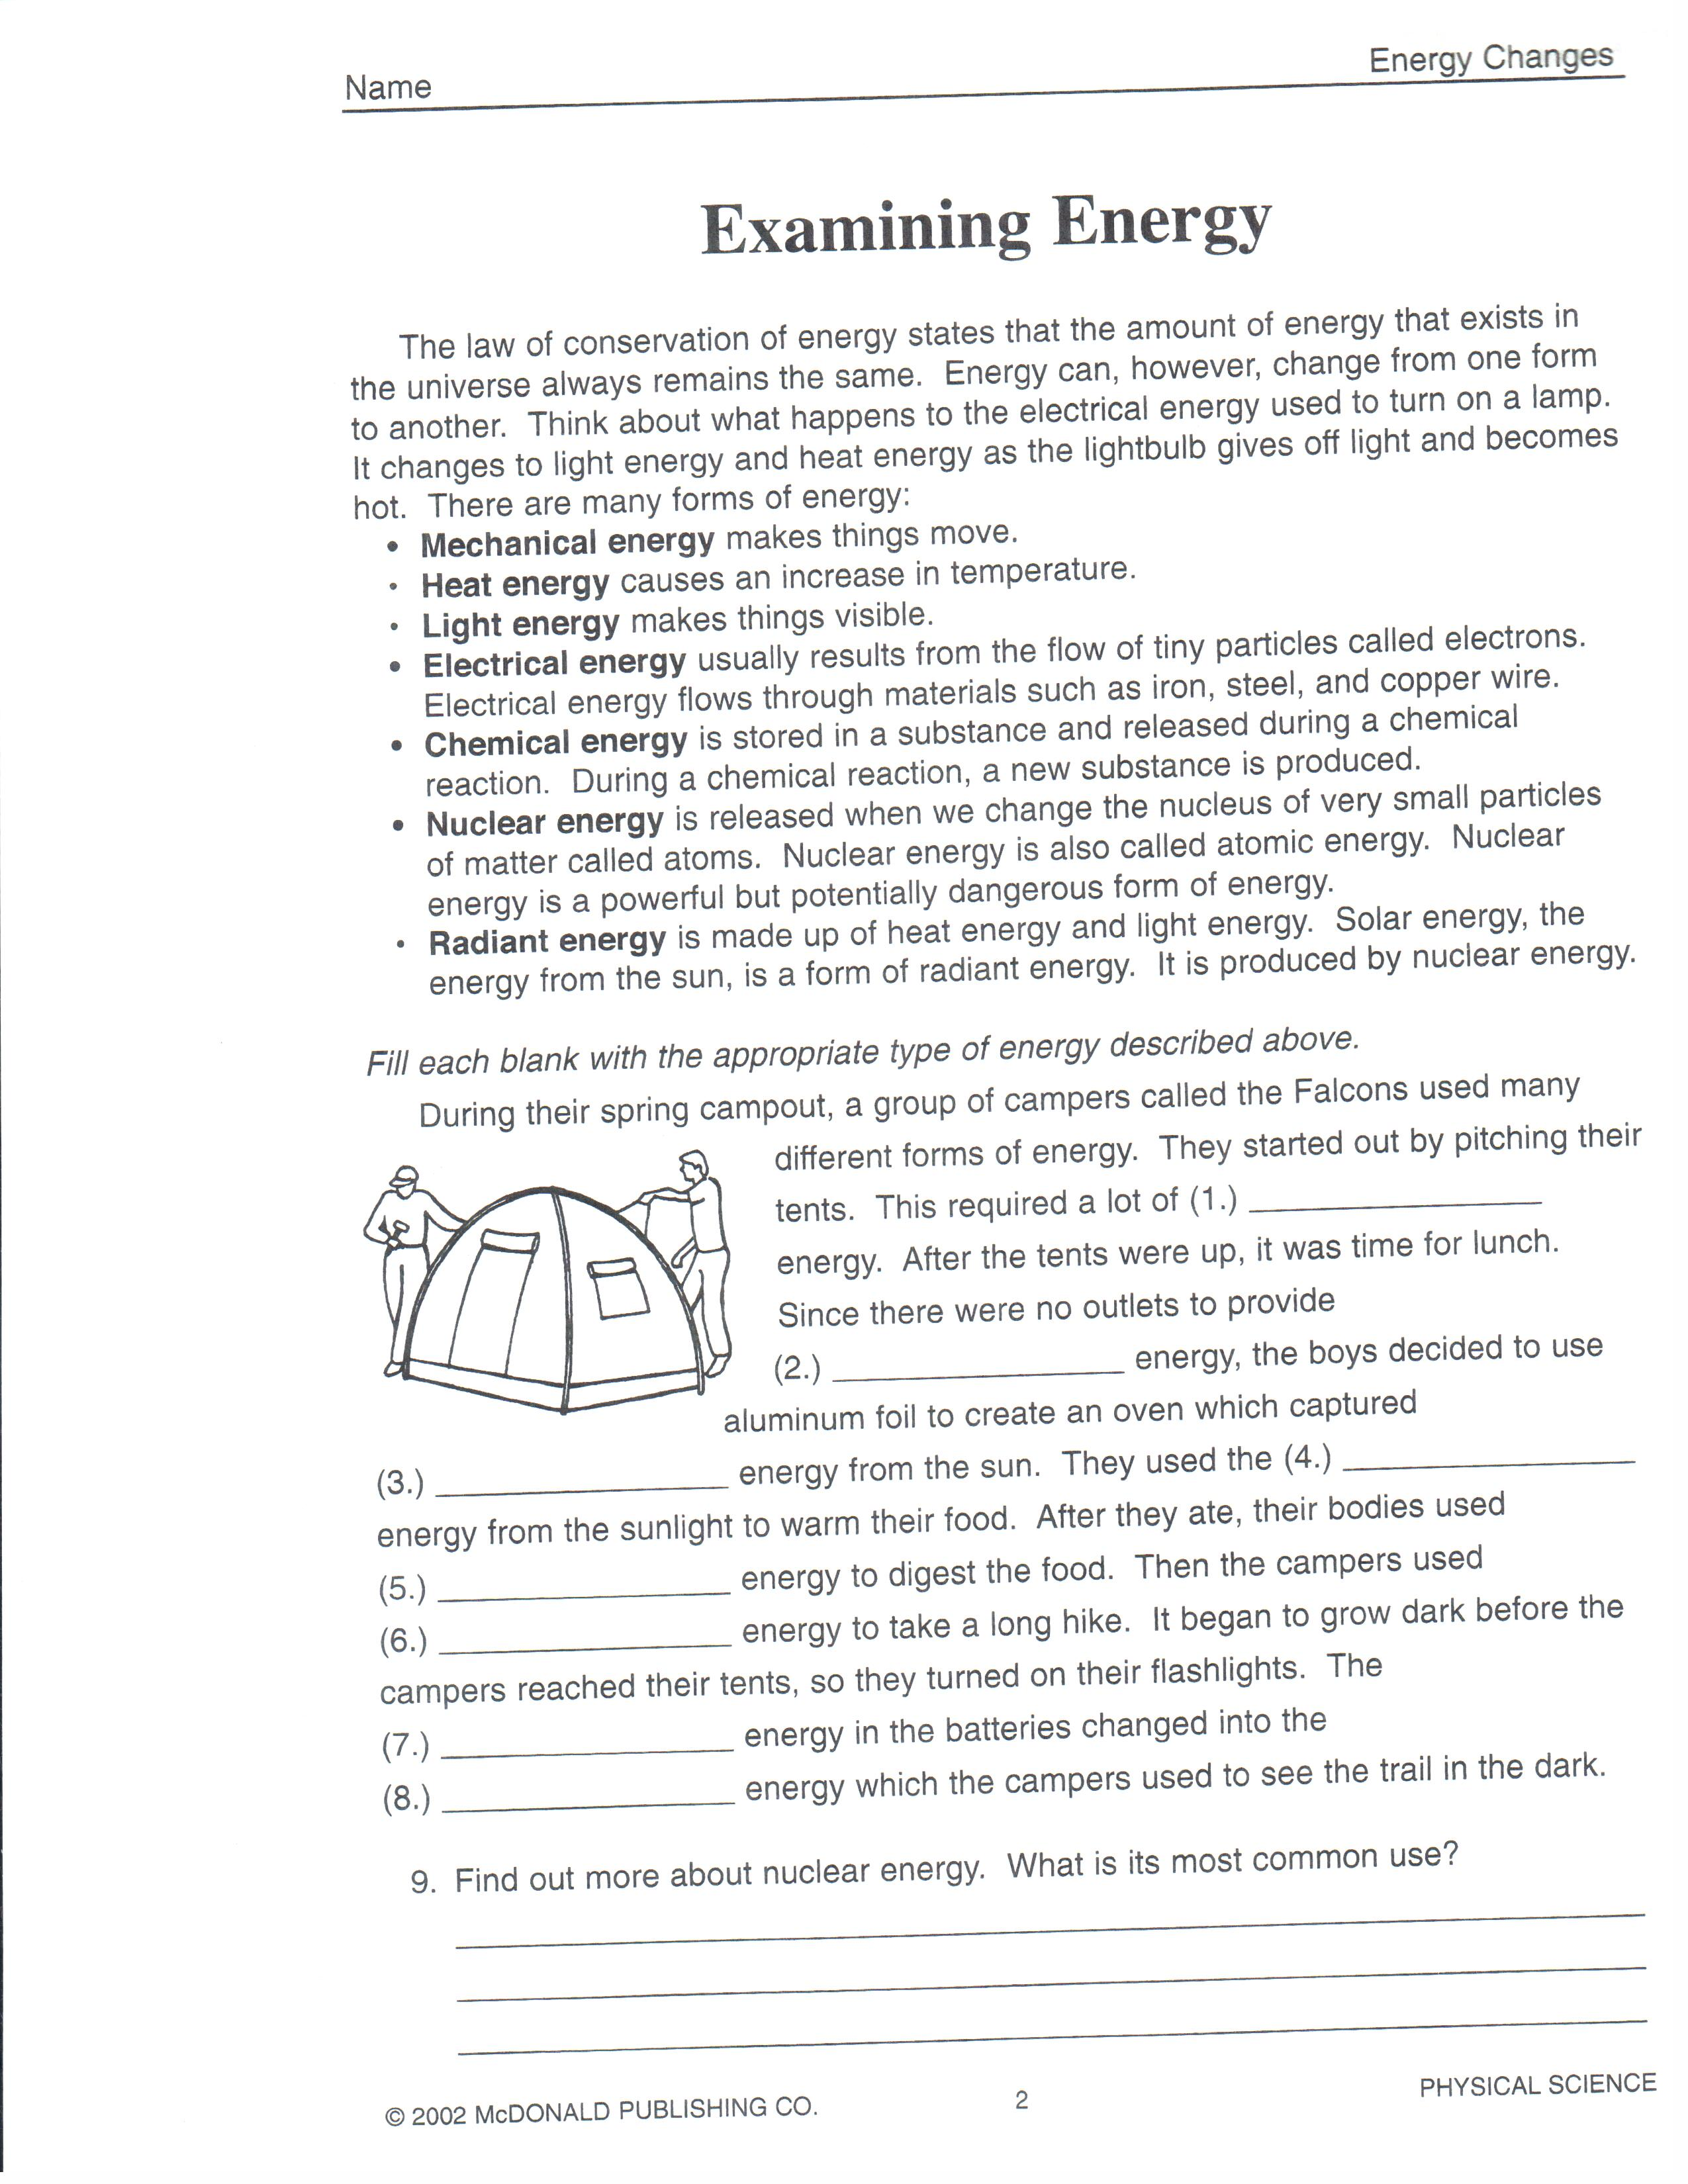 Common Core Math Worksheets 8th Grade